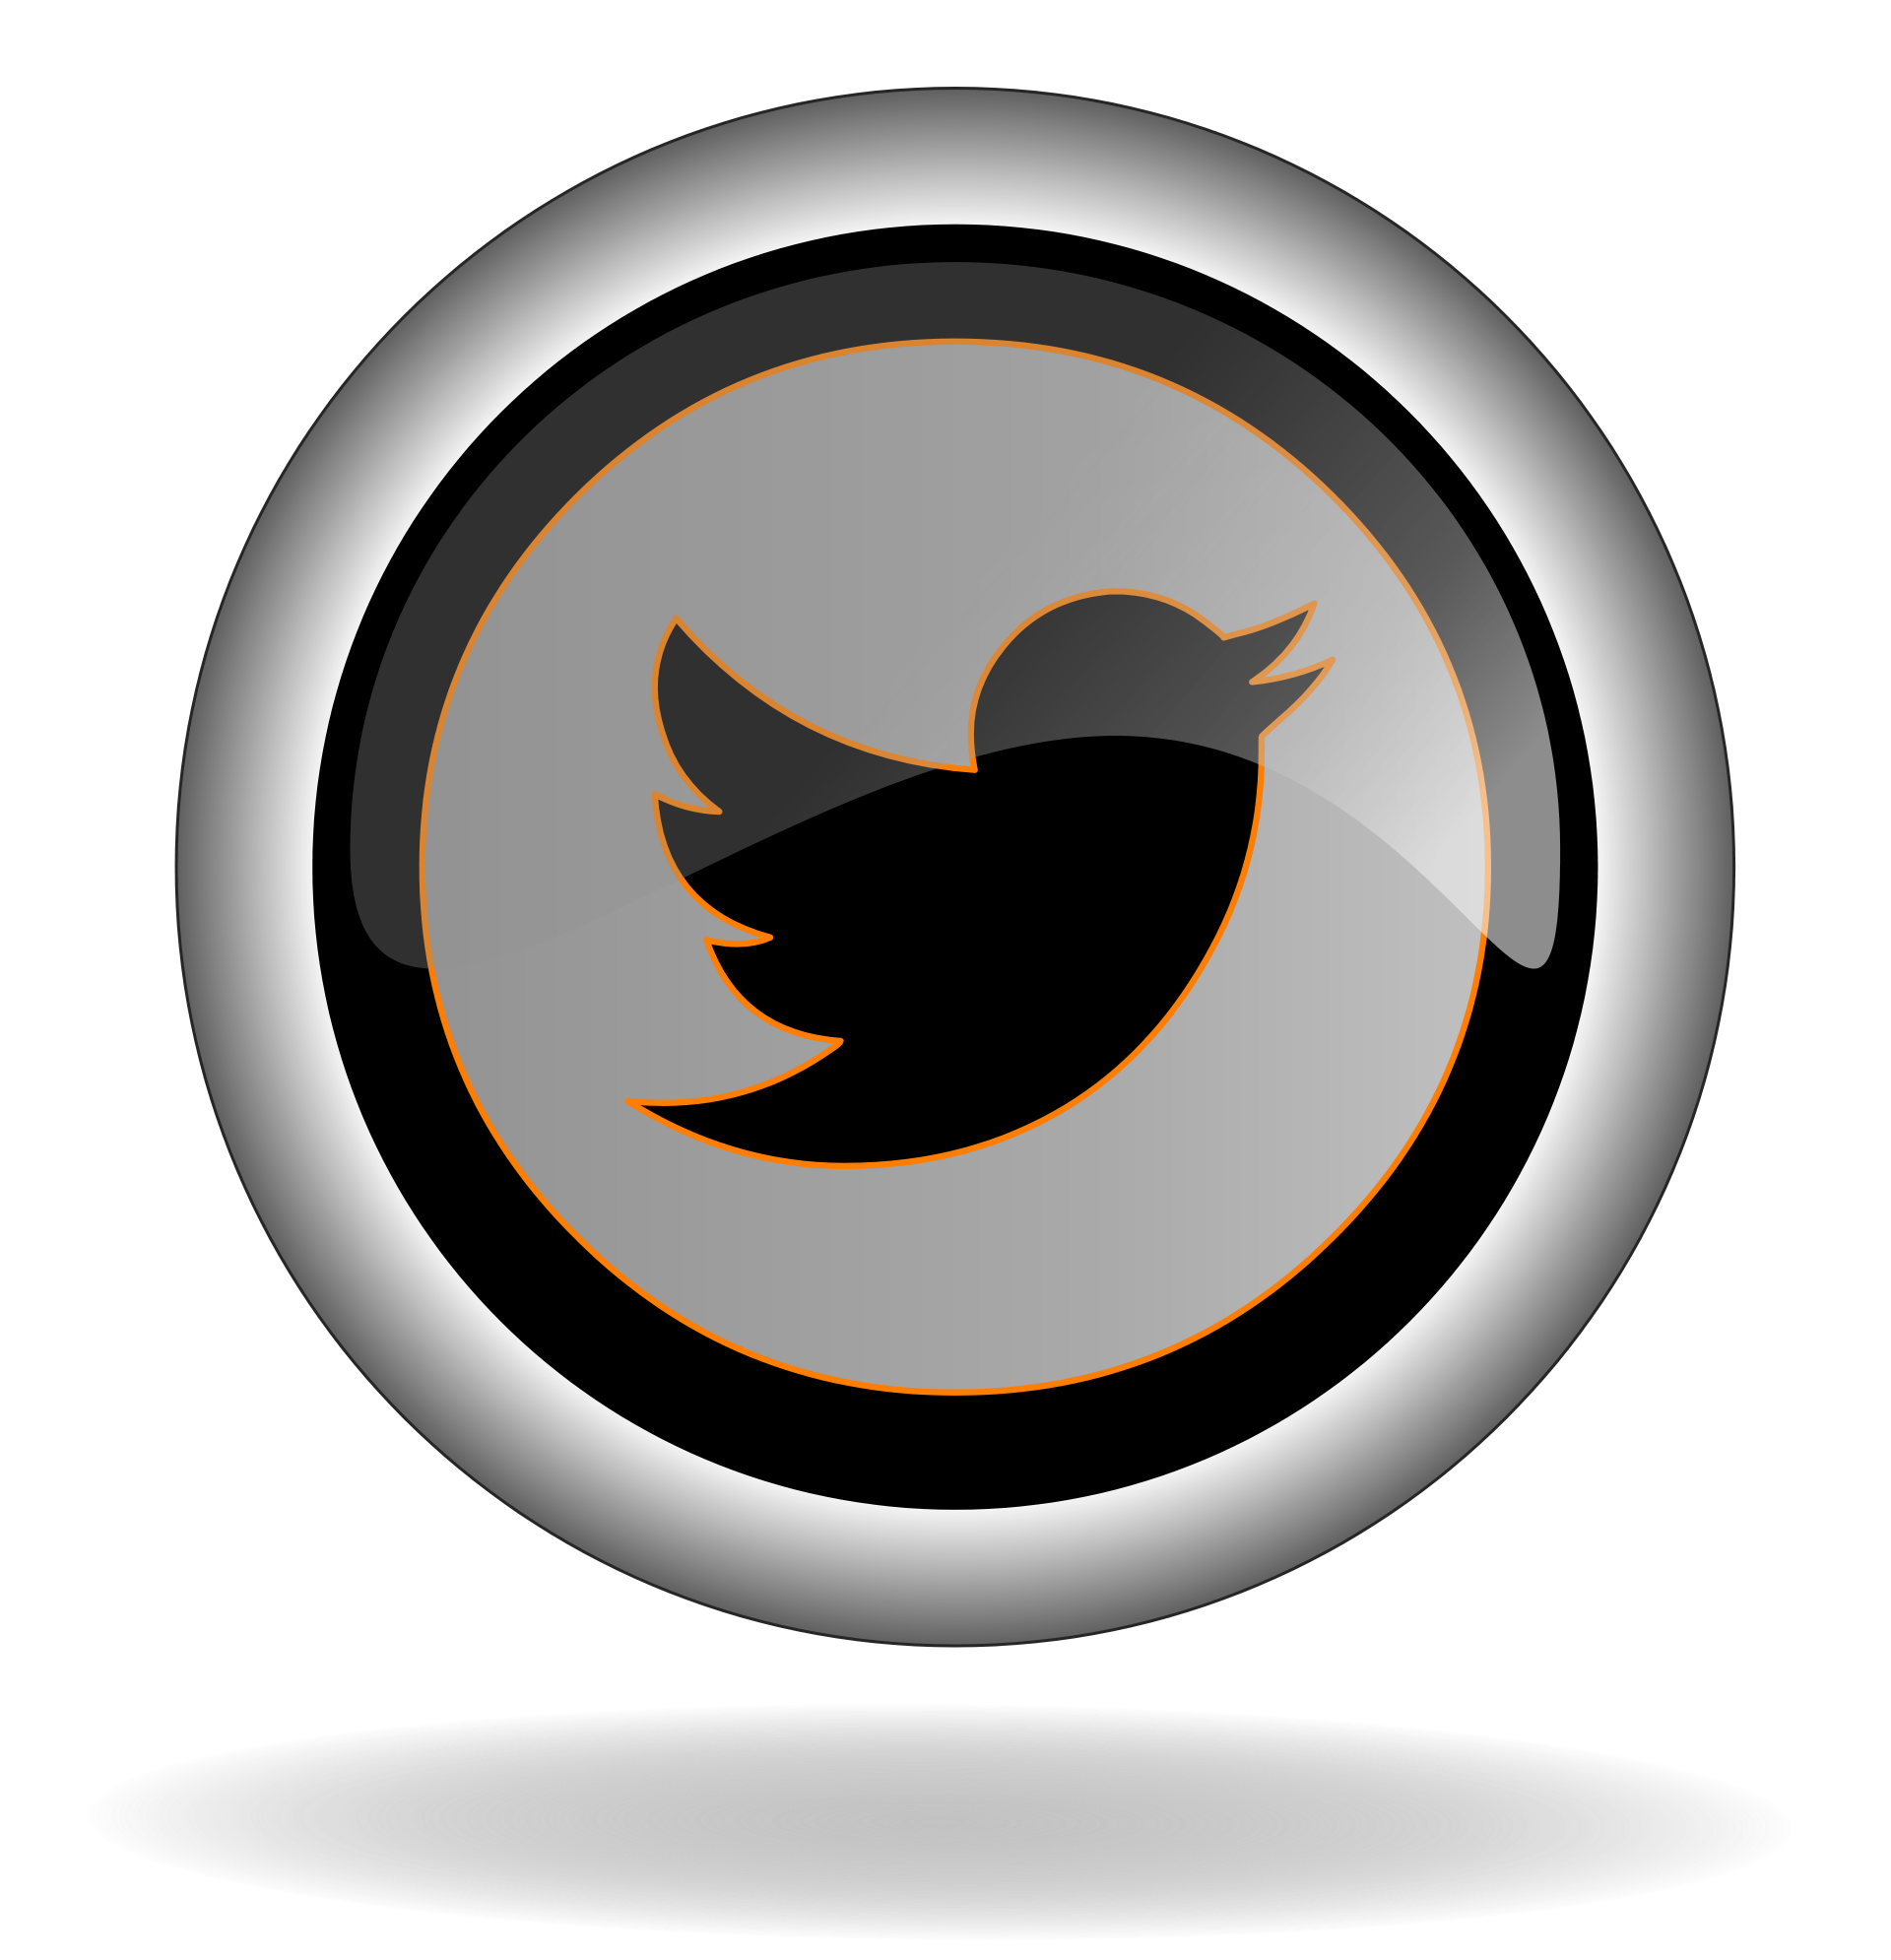 Twitter emblem png. Logo icon play